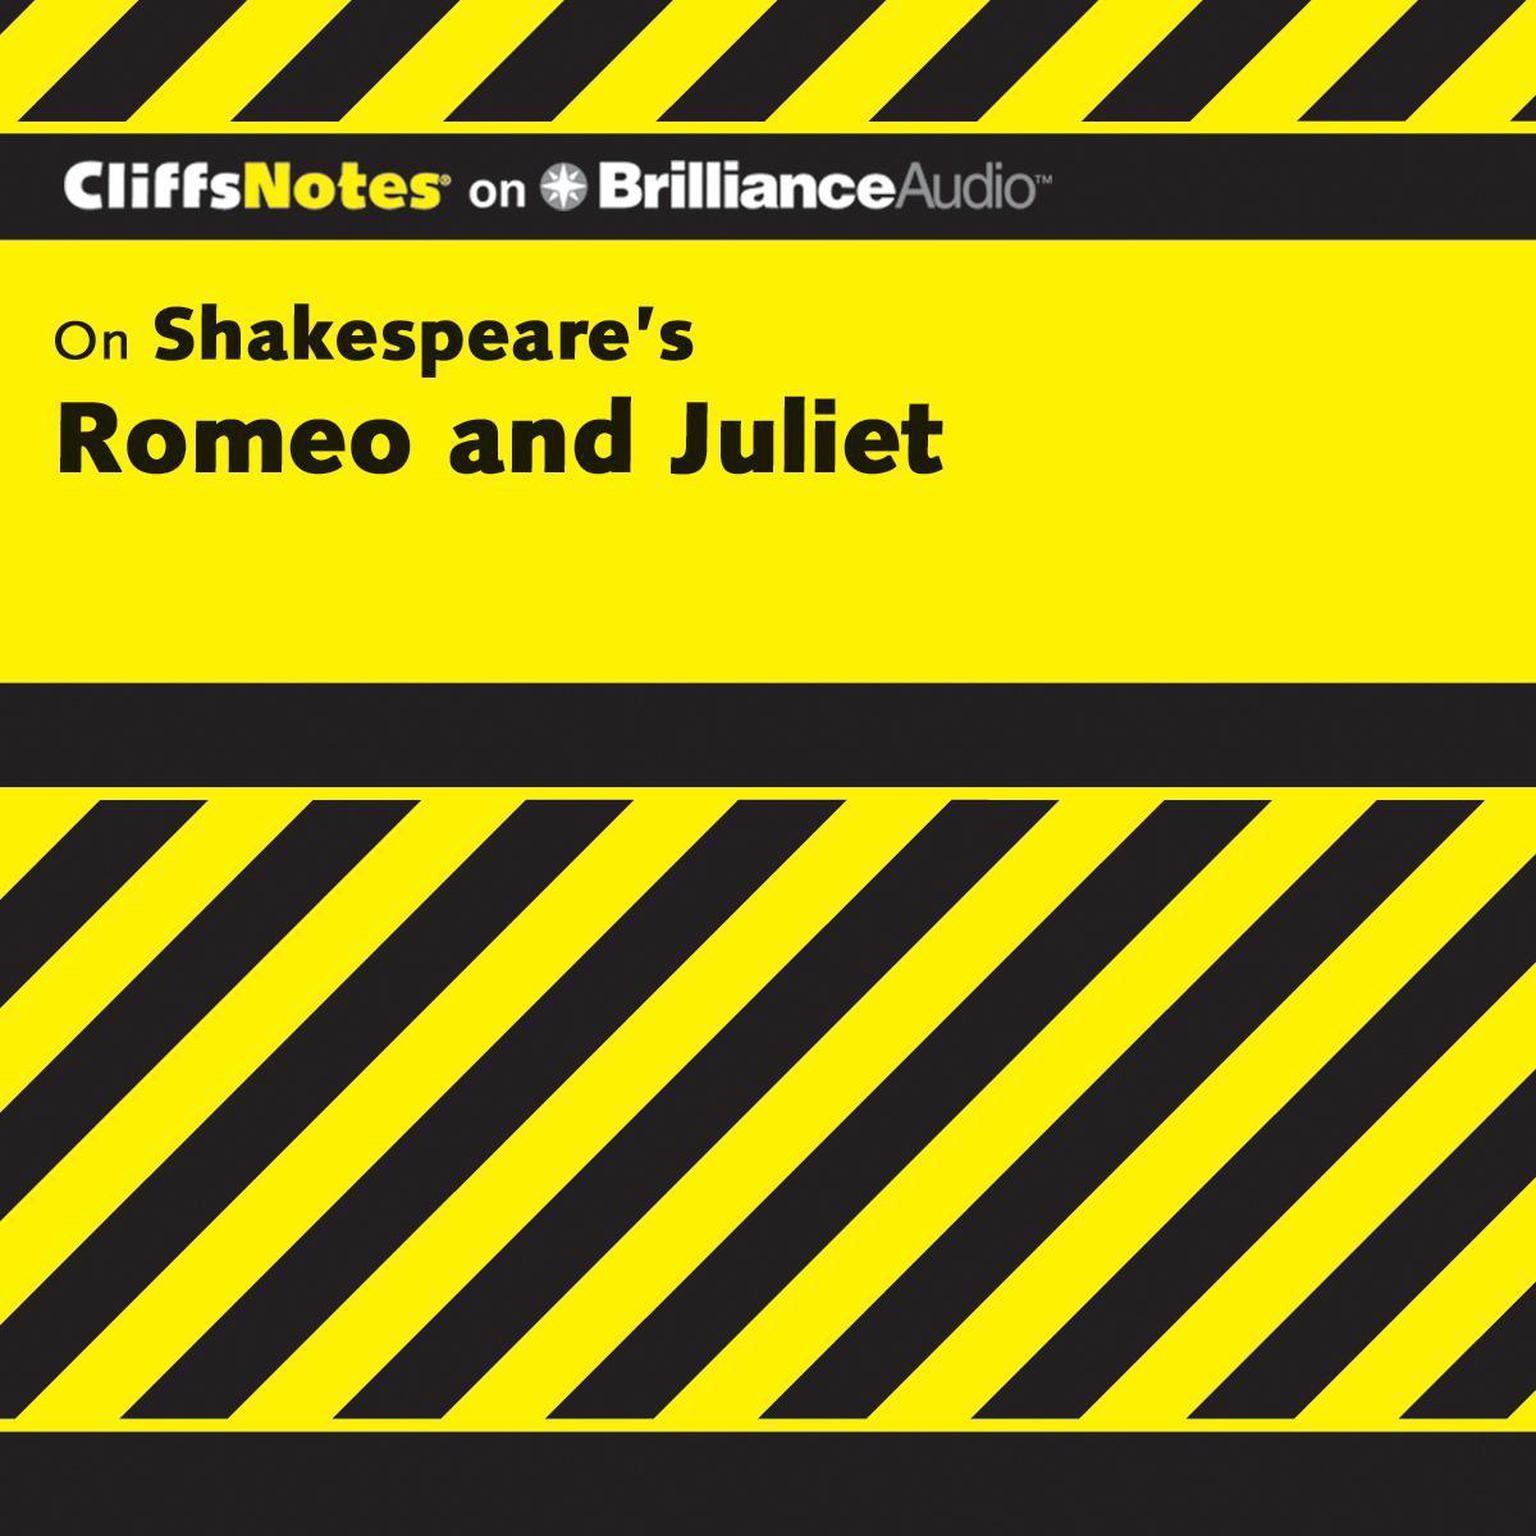 a literary analysis of romeo and juiet by william shakespeare a new release Romeo and juliet - ebook written by william shakespeare read this book using google play books app on your pc, android, ios devices download for offline reading, highlight, bookmark or take notes while you read romeo and juliet.